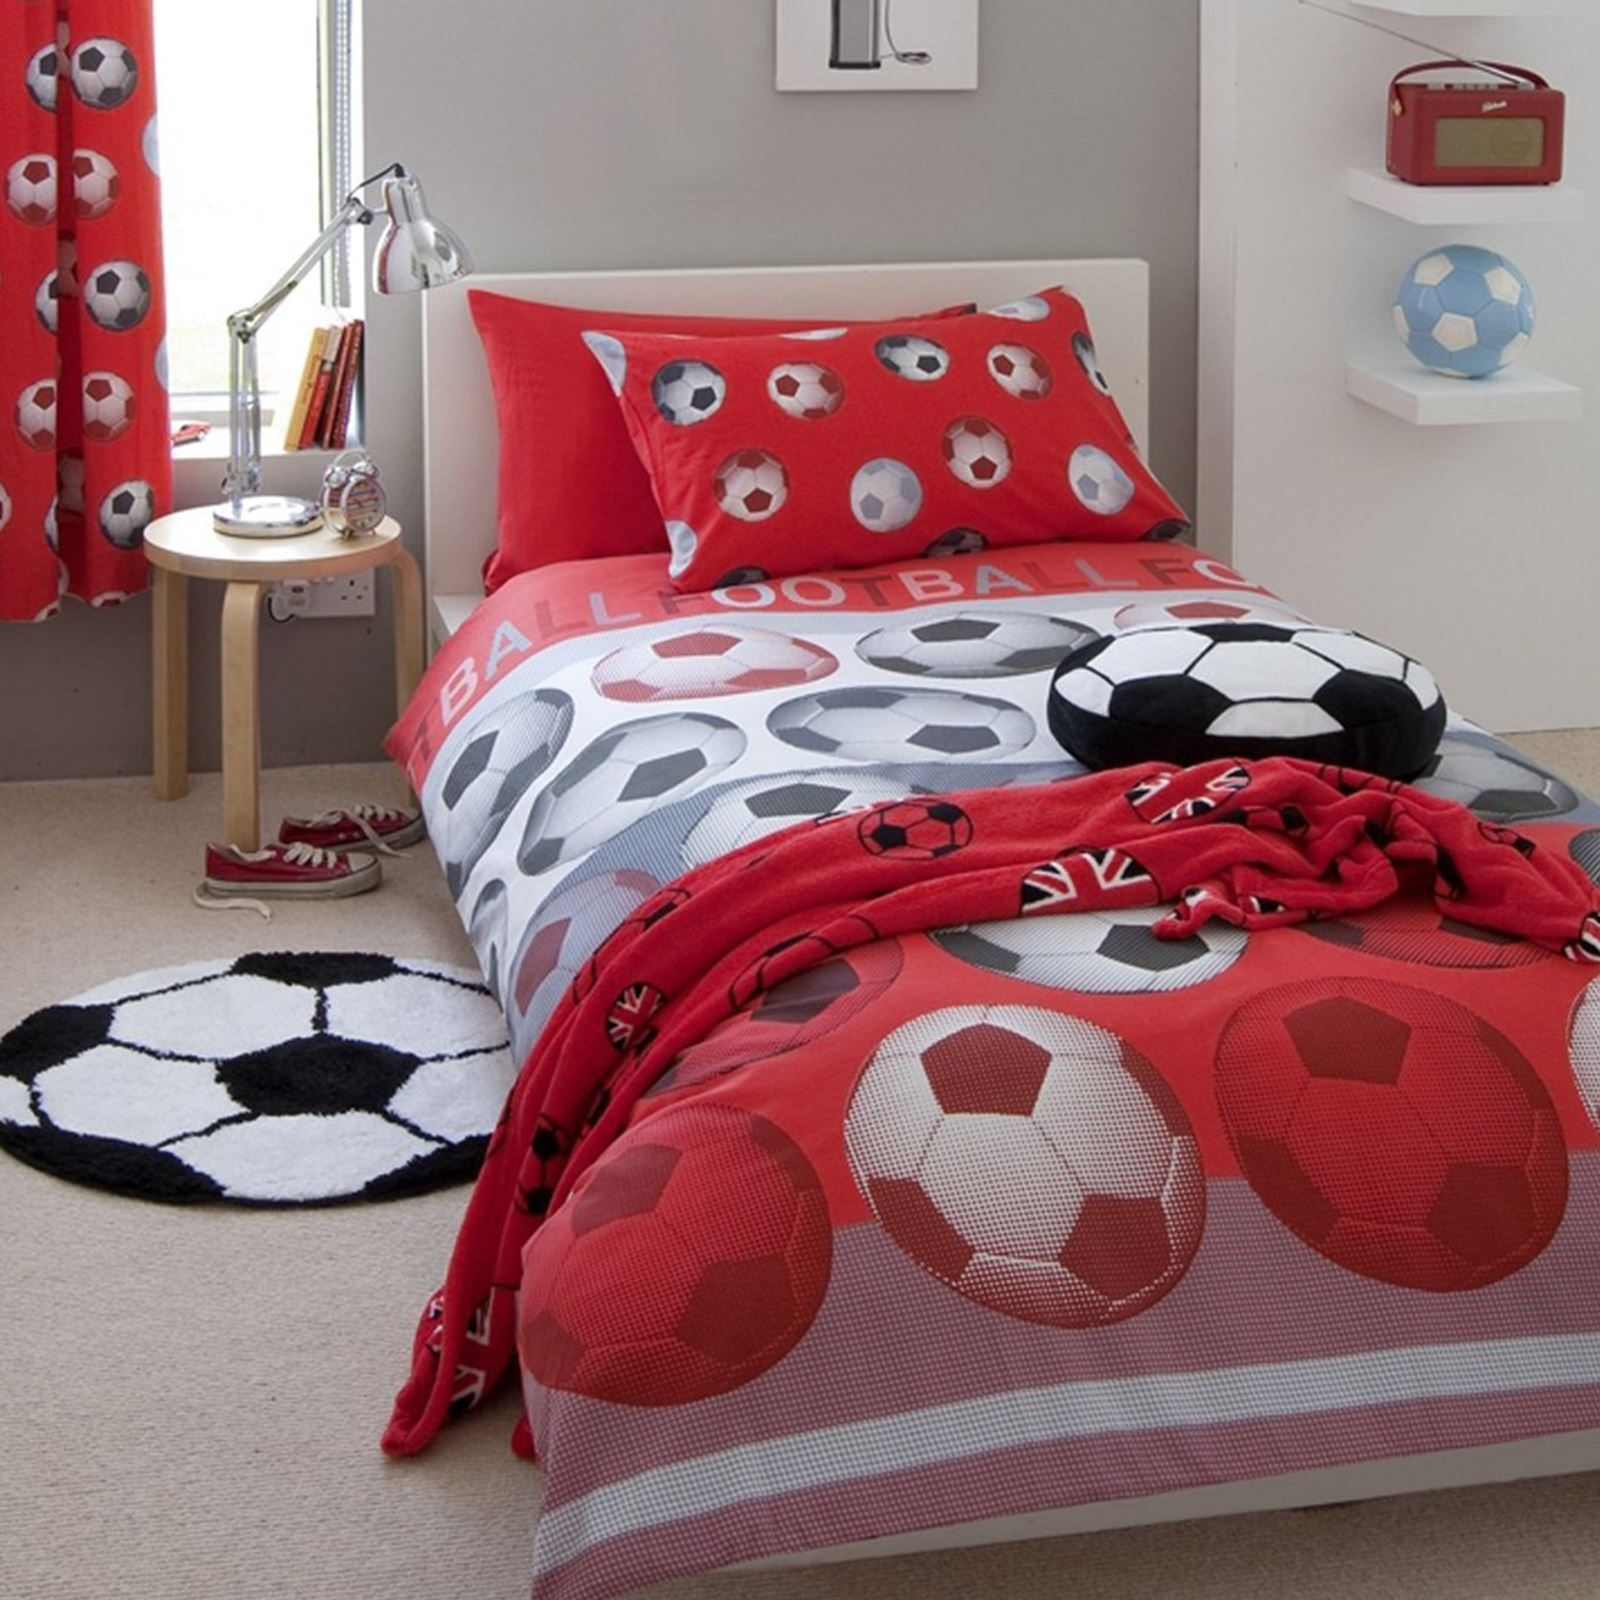 htm rwnlvm sets fashion american home cover sports comforters navy lattitude bedding comforter duvet covers white red